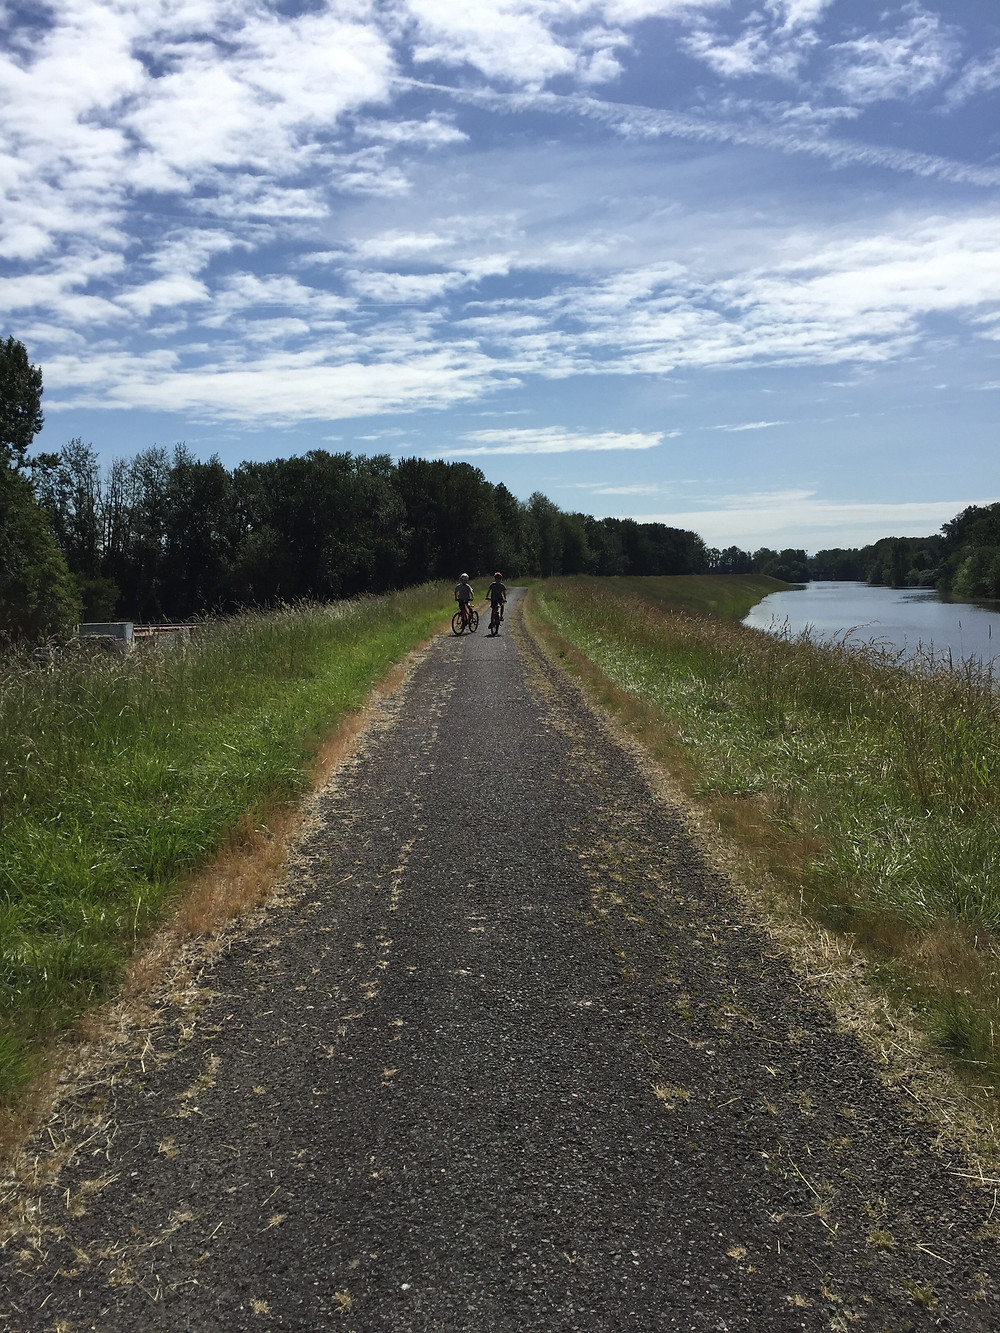 blue sky mottled with clouds over a gravel path next to a slough with two youth on bikes in the distance